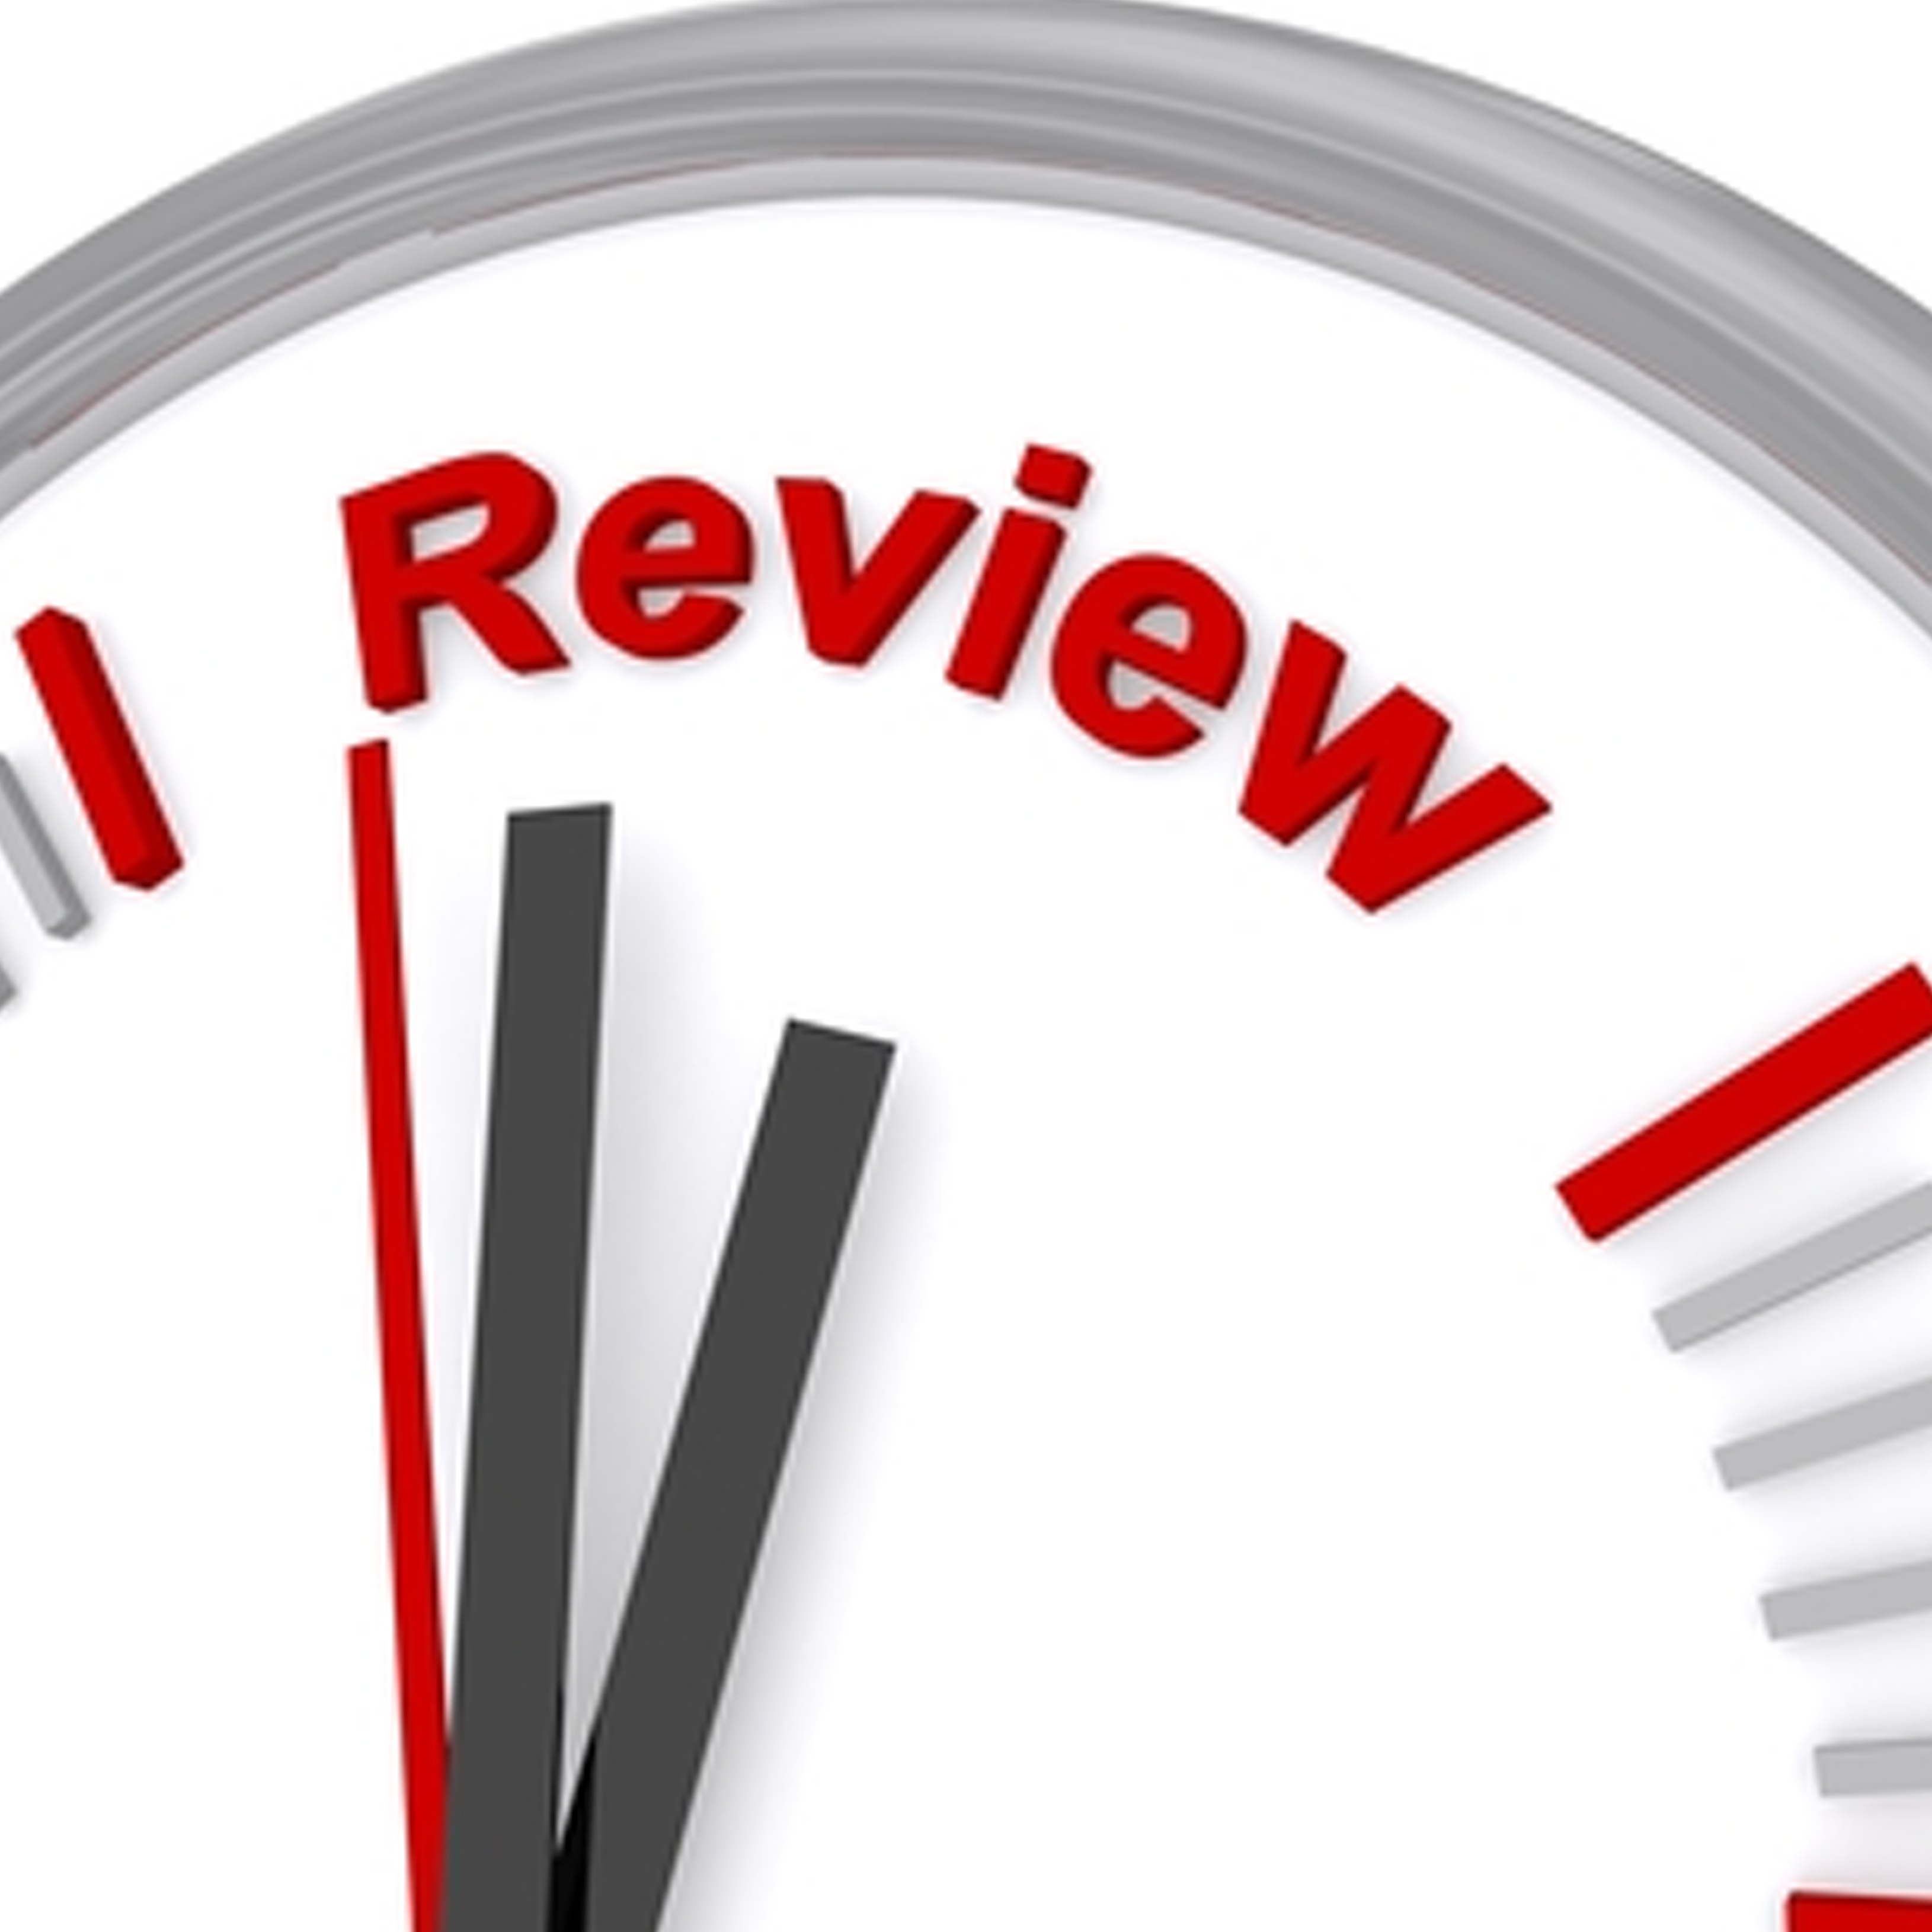 The Power of Review